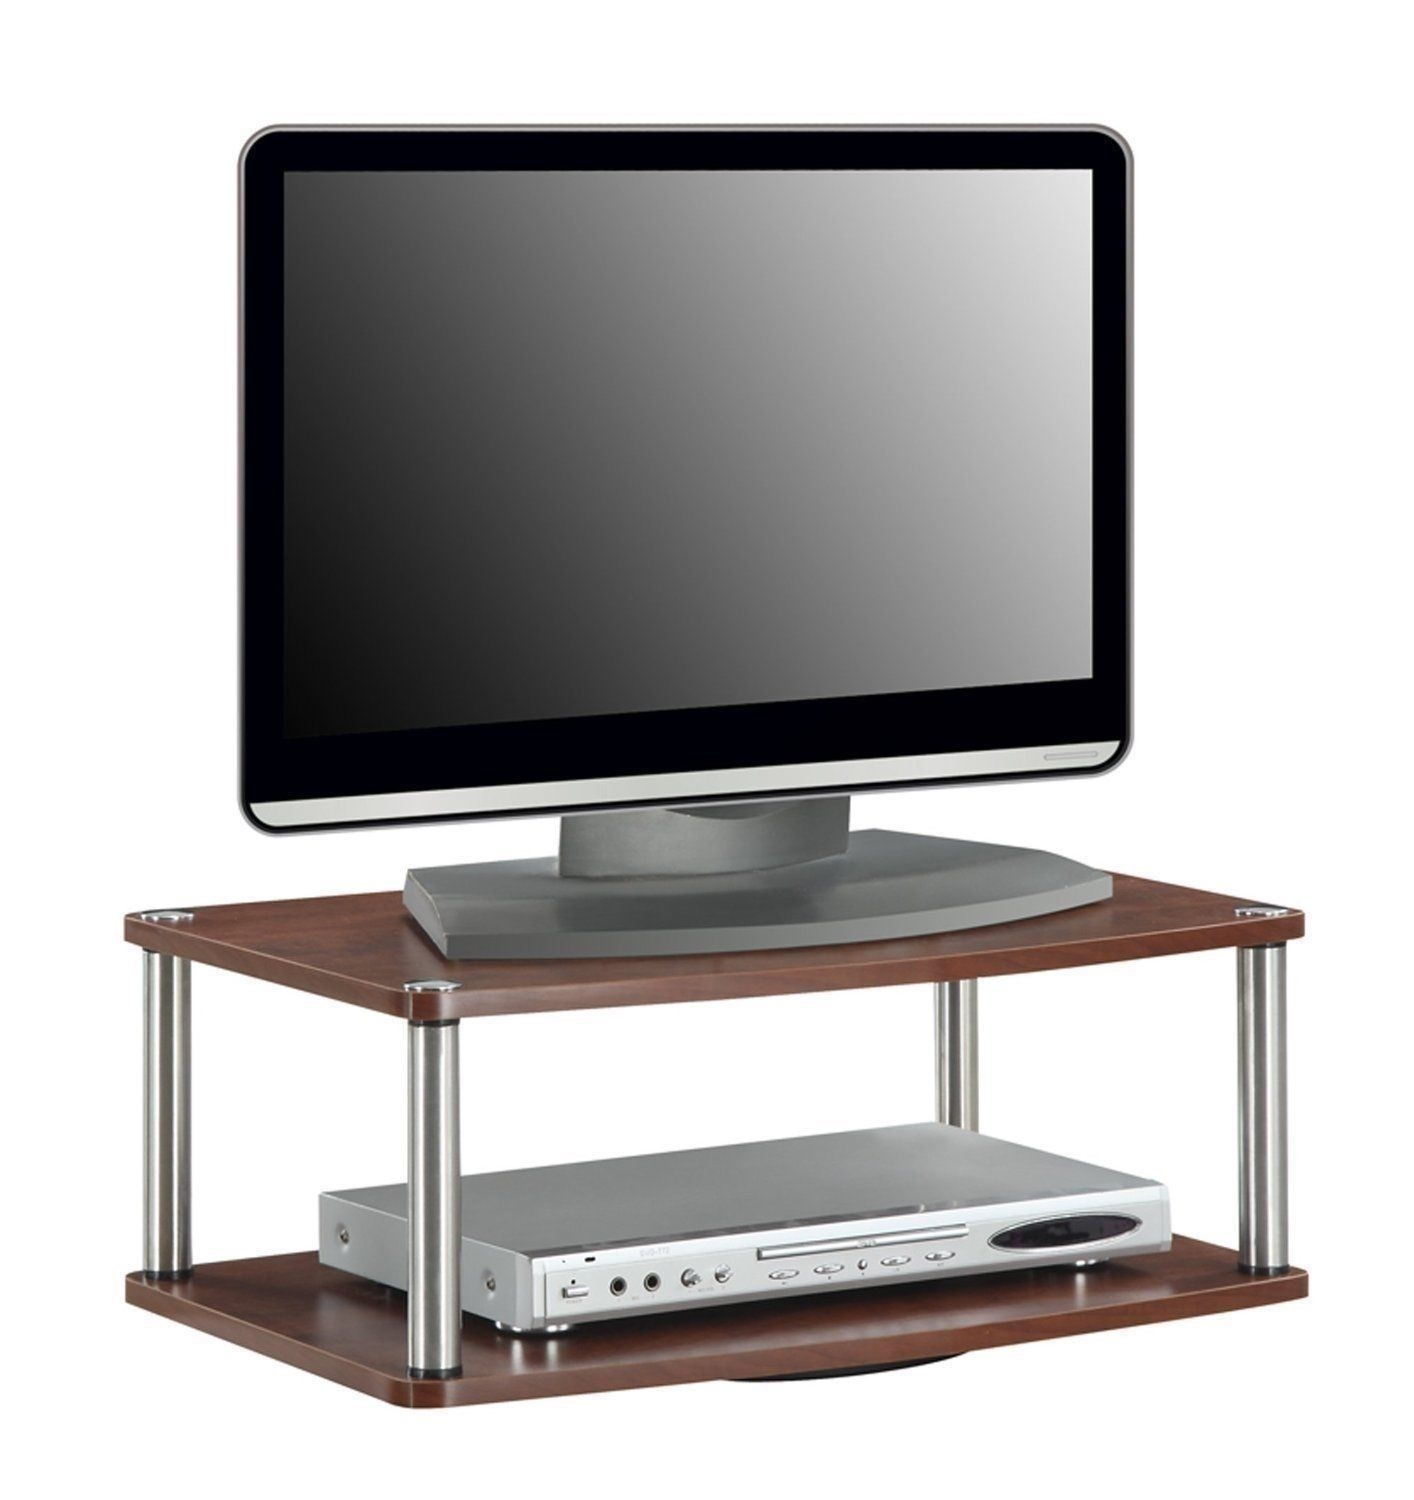 New Tv Monitor Swivel Stand Large 2 Tier Cherry Counter